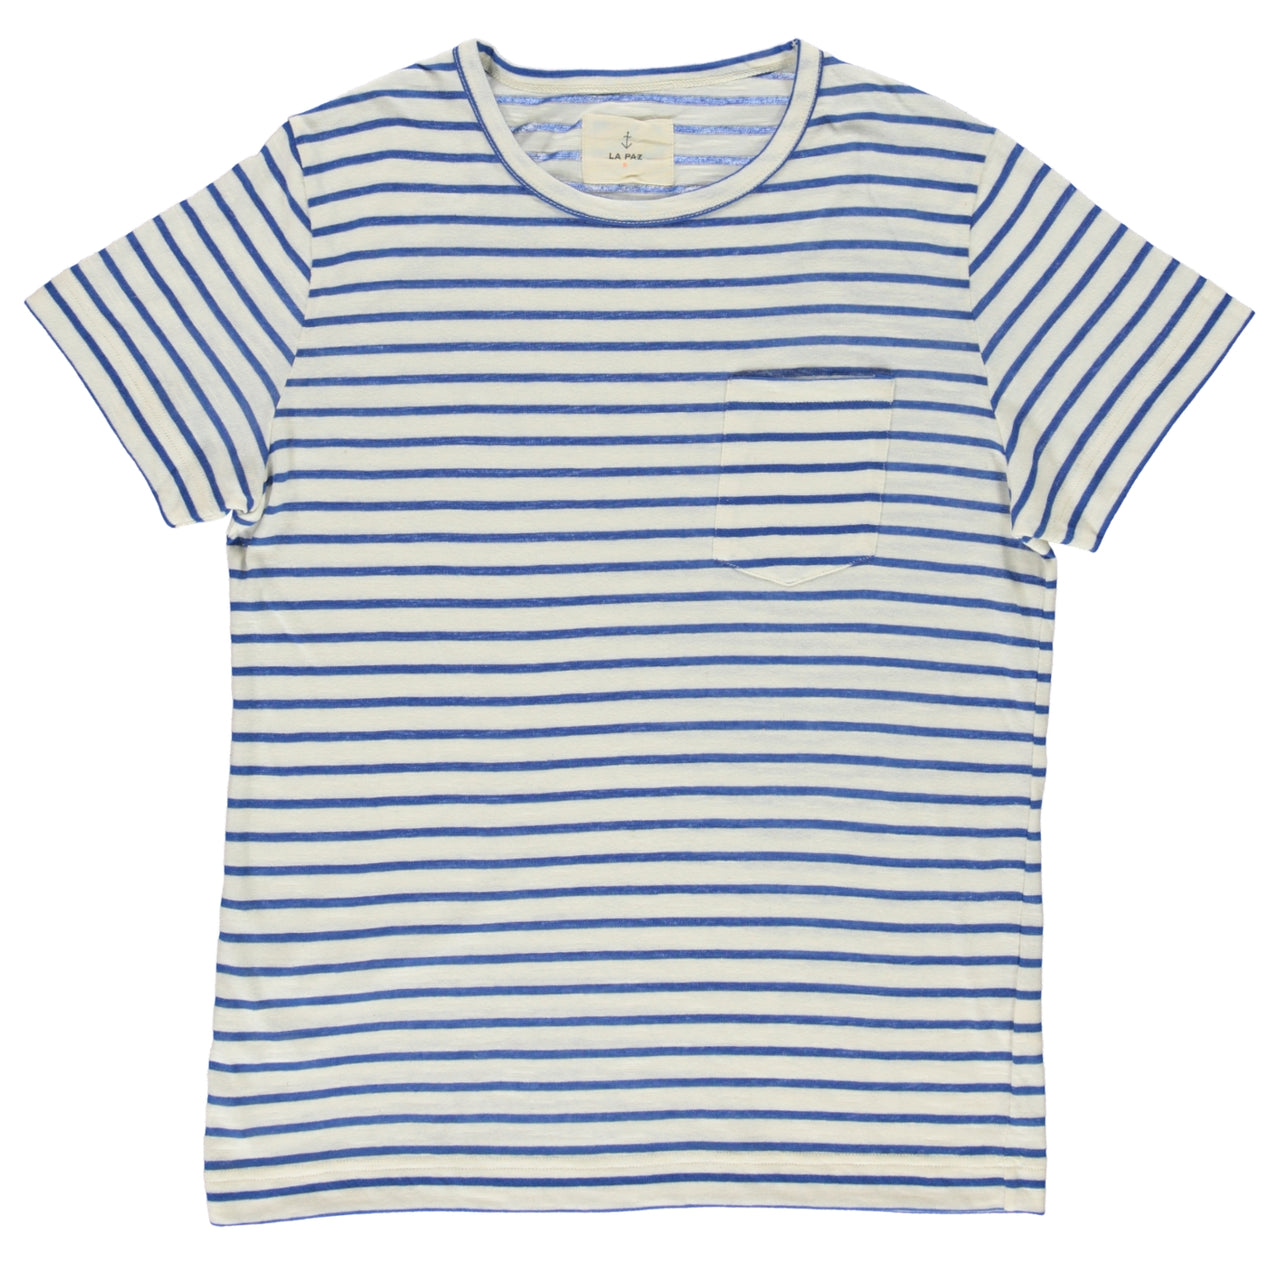 Camiseta Guerreiro blue stripes